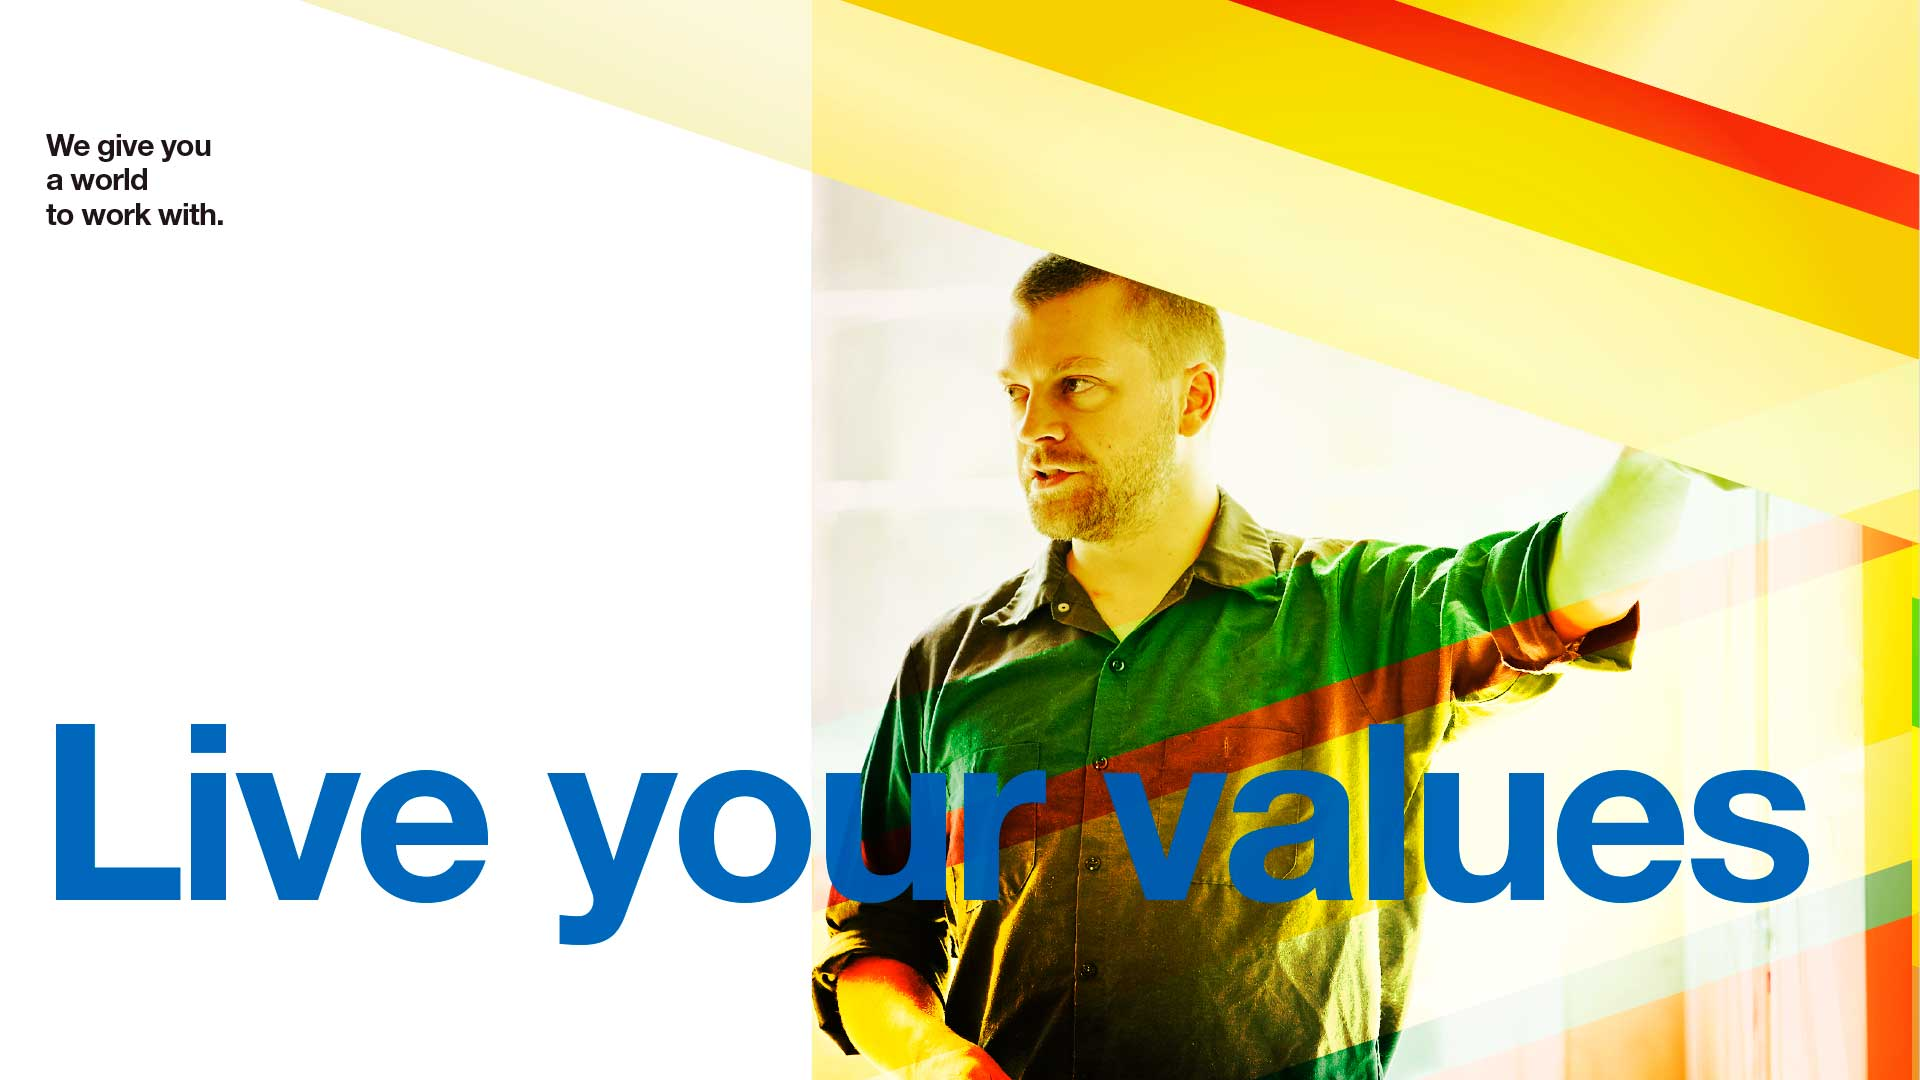 Live your values design concept. Avery Dennison employer brand. Man giving presentation, highlighted by color.